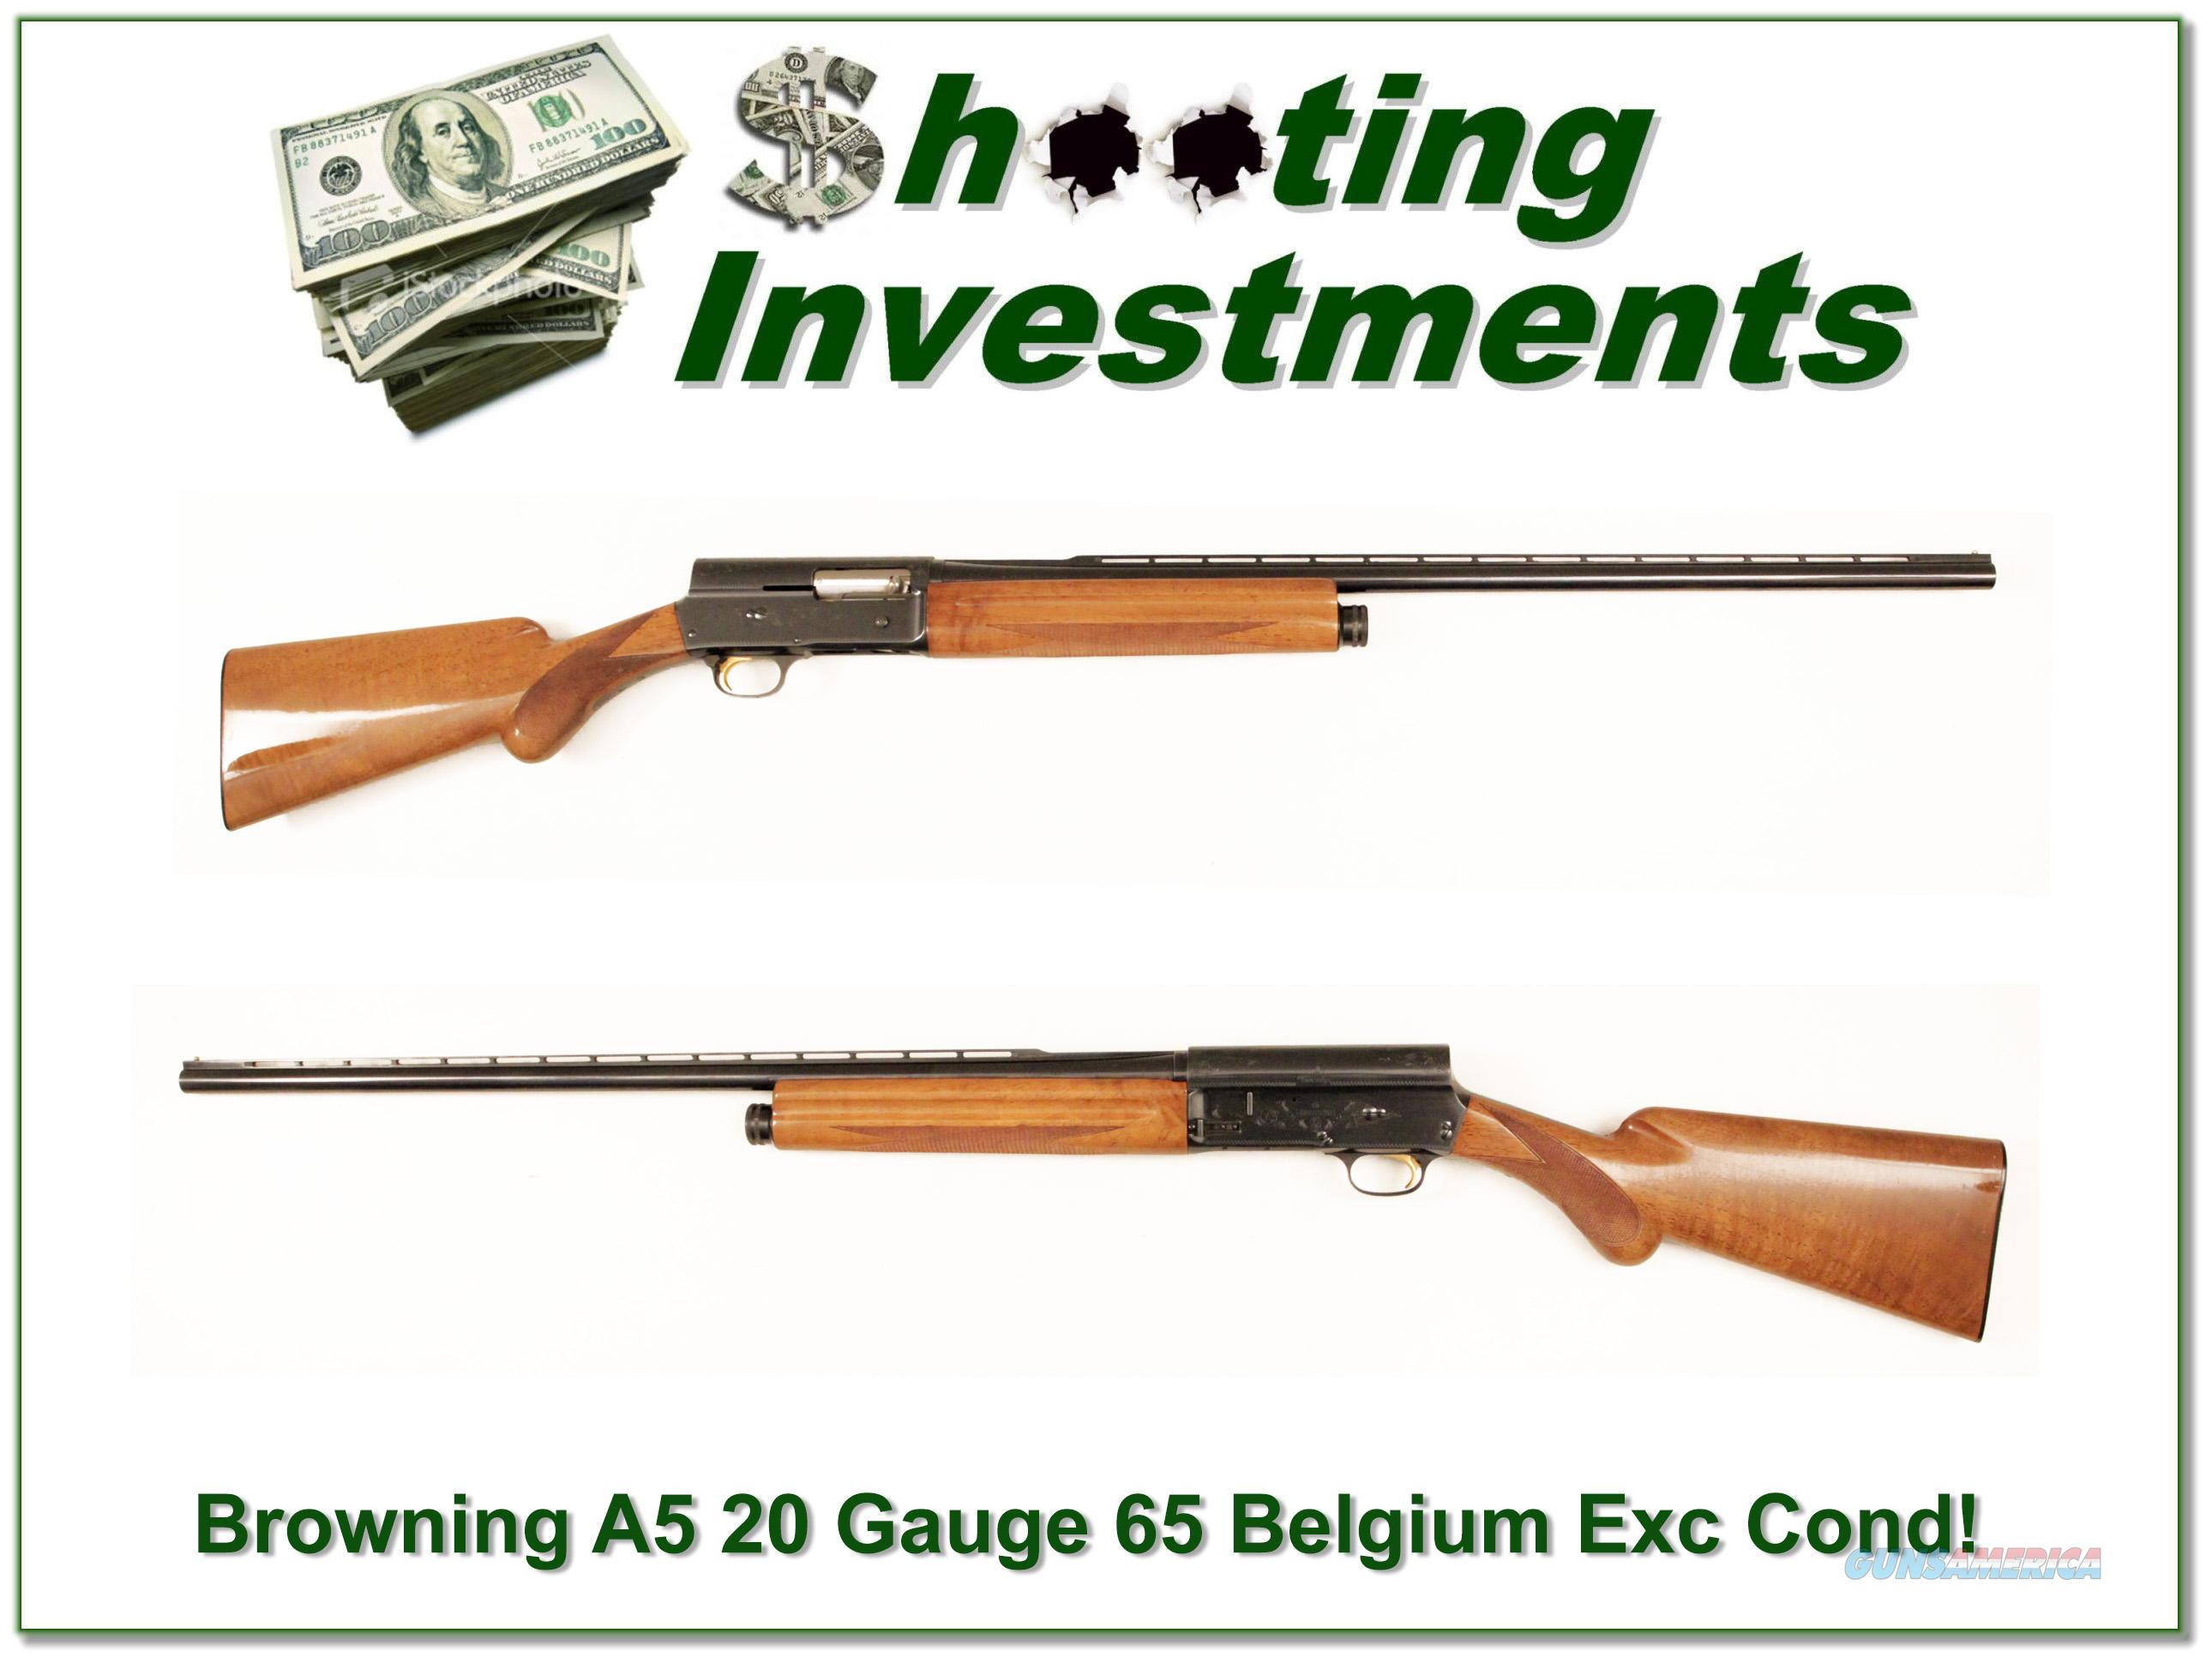 Browning A5 20 Gauge 65 Belgium Honey Blond VR!  Guns > Shotguns > Browning Shotguns > Autoloaders > Hunting